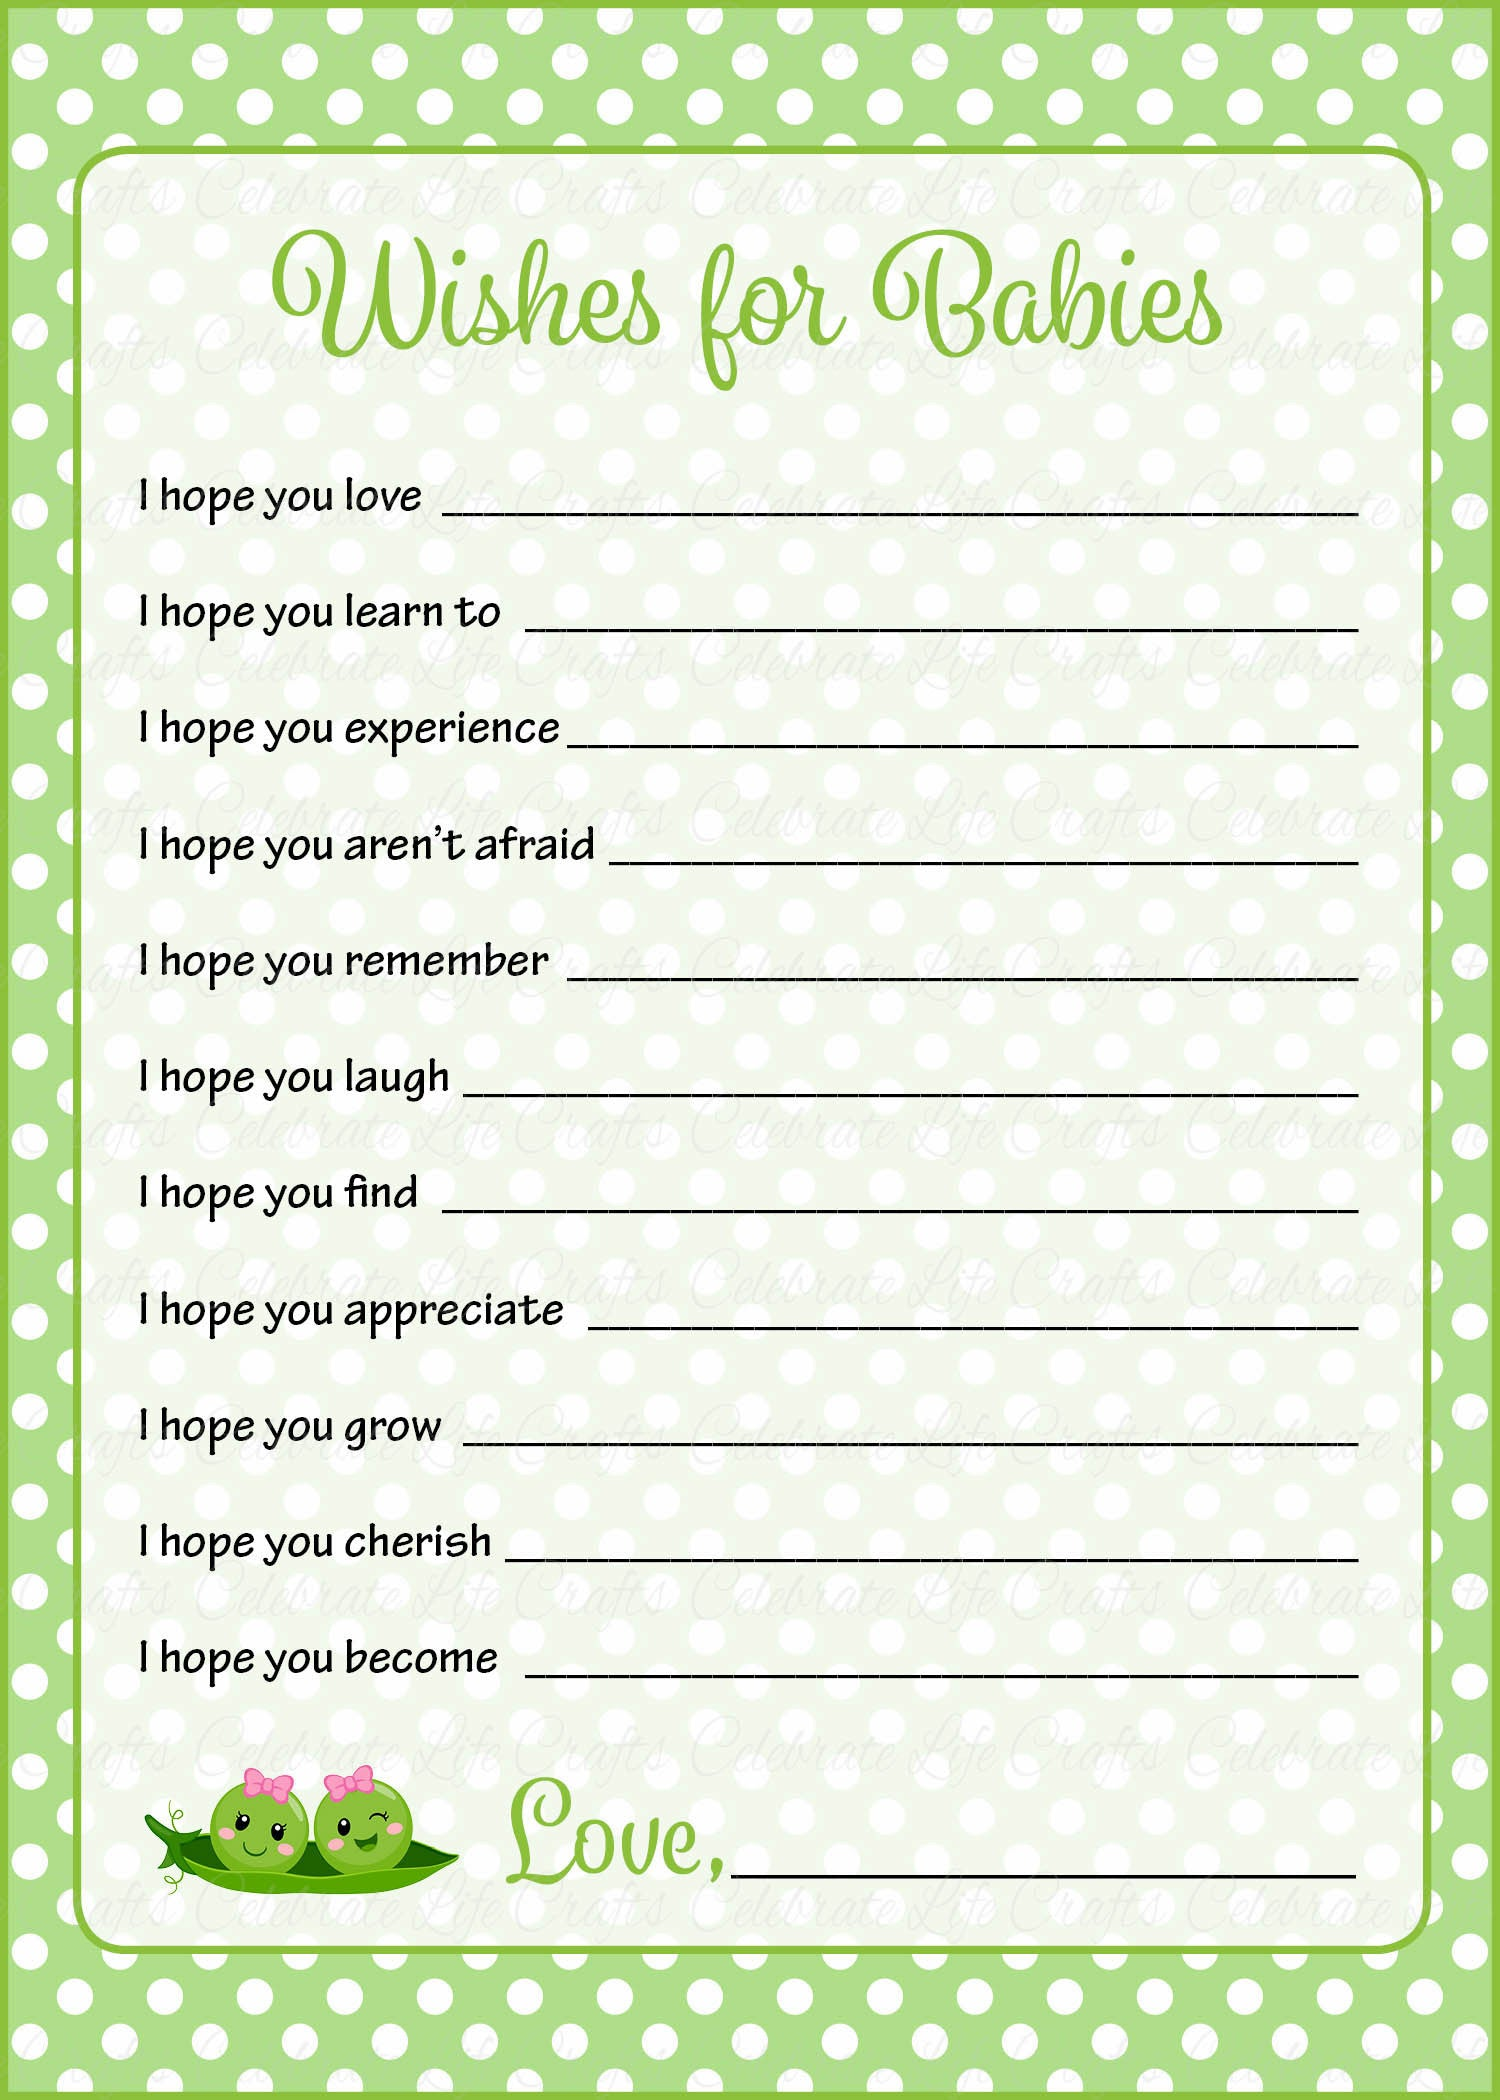 Wishes For Baby Shower Activity - Peas In A Pod Baby -7321